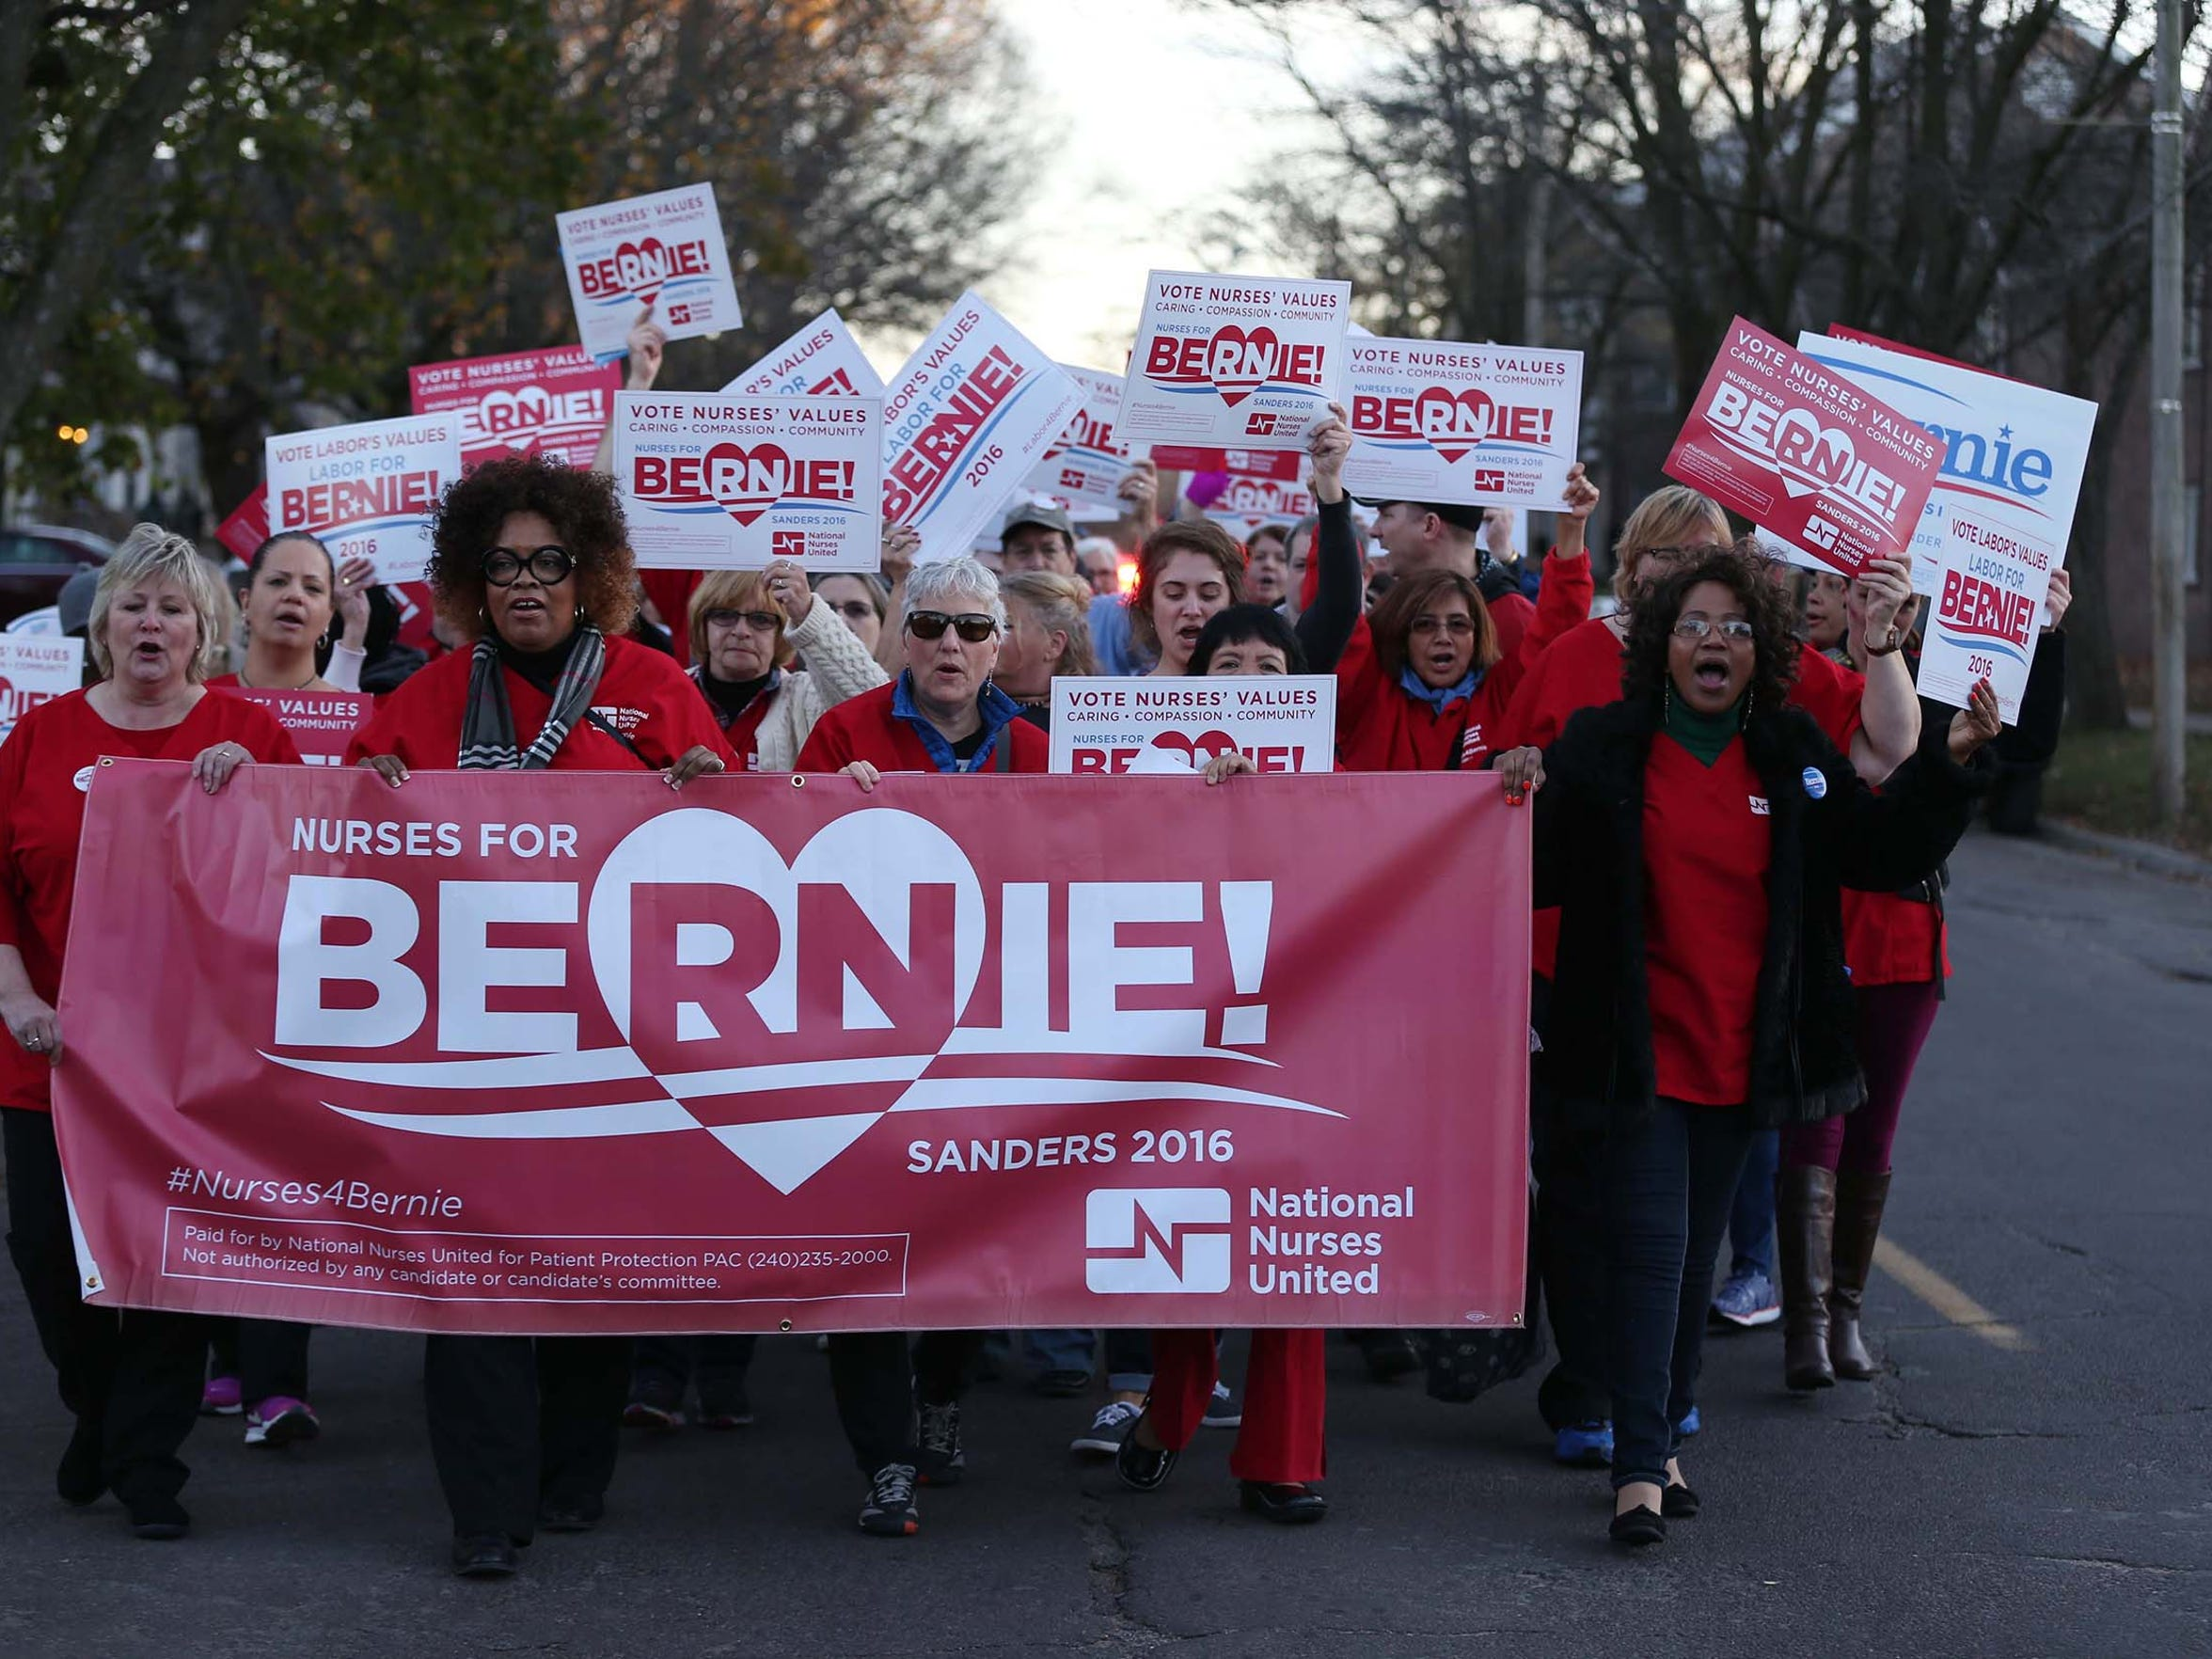 A group of registered nurses rally for Bernie Sanders ahead of the Democratic Debate on Saturday, Nov. 14, 2015, in Des Moines. The group of nurses and other supporters marched from Drake Park to another Sanders event near the Drake University campus.